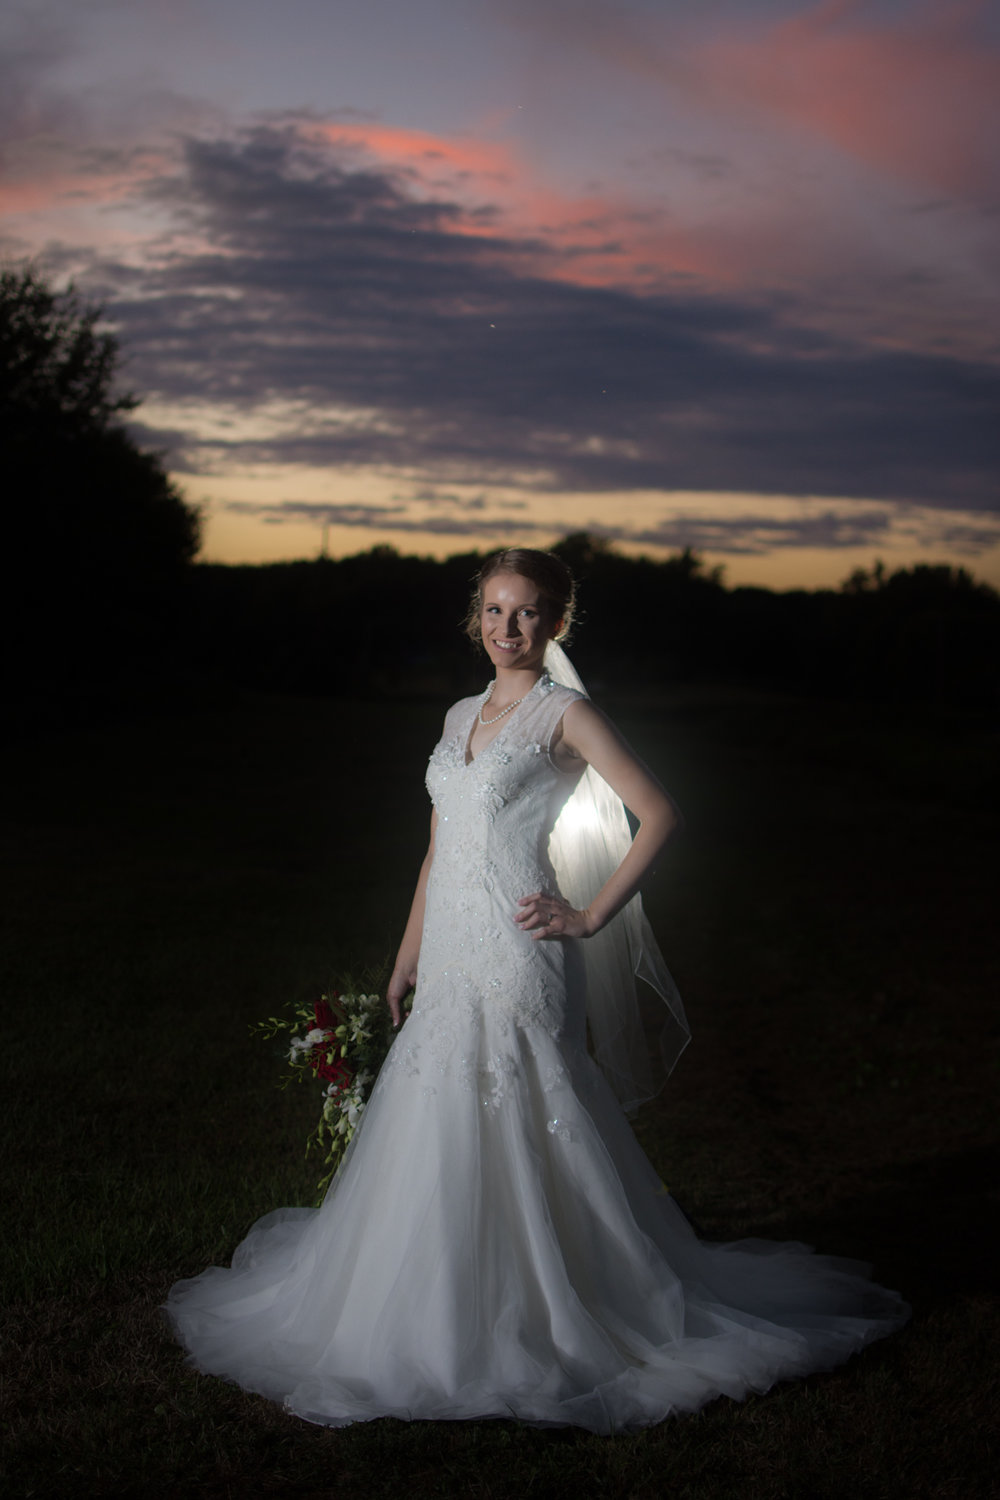 bridalportraits (48 of 49).JPG